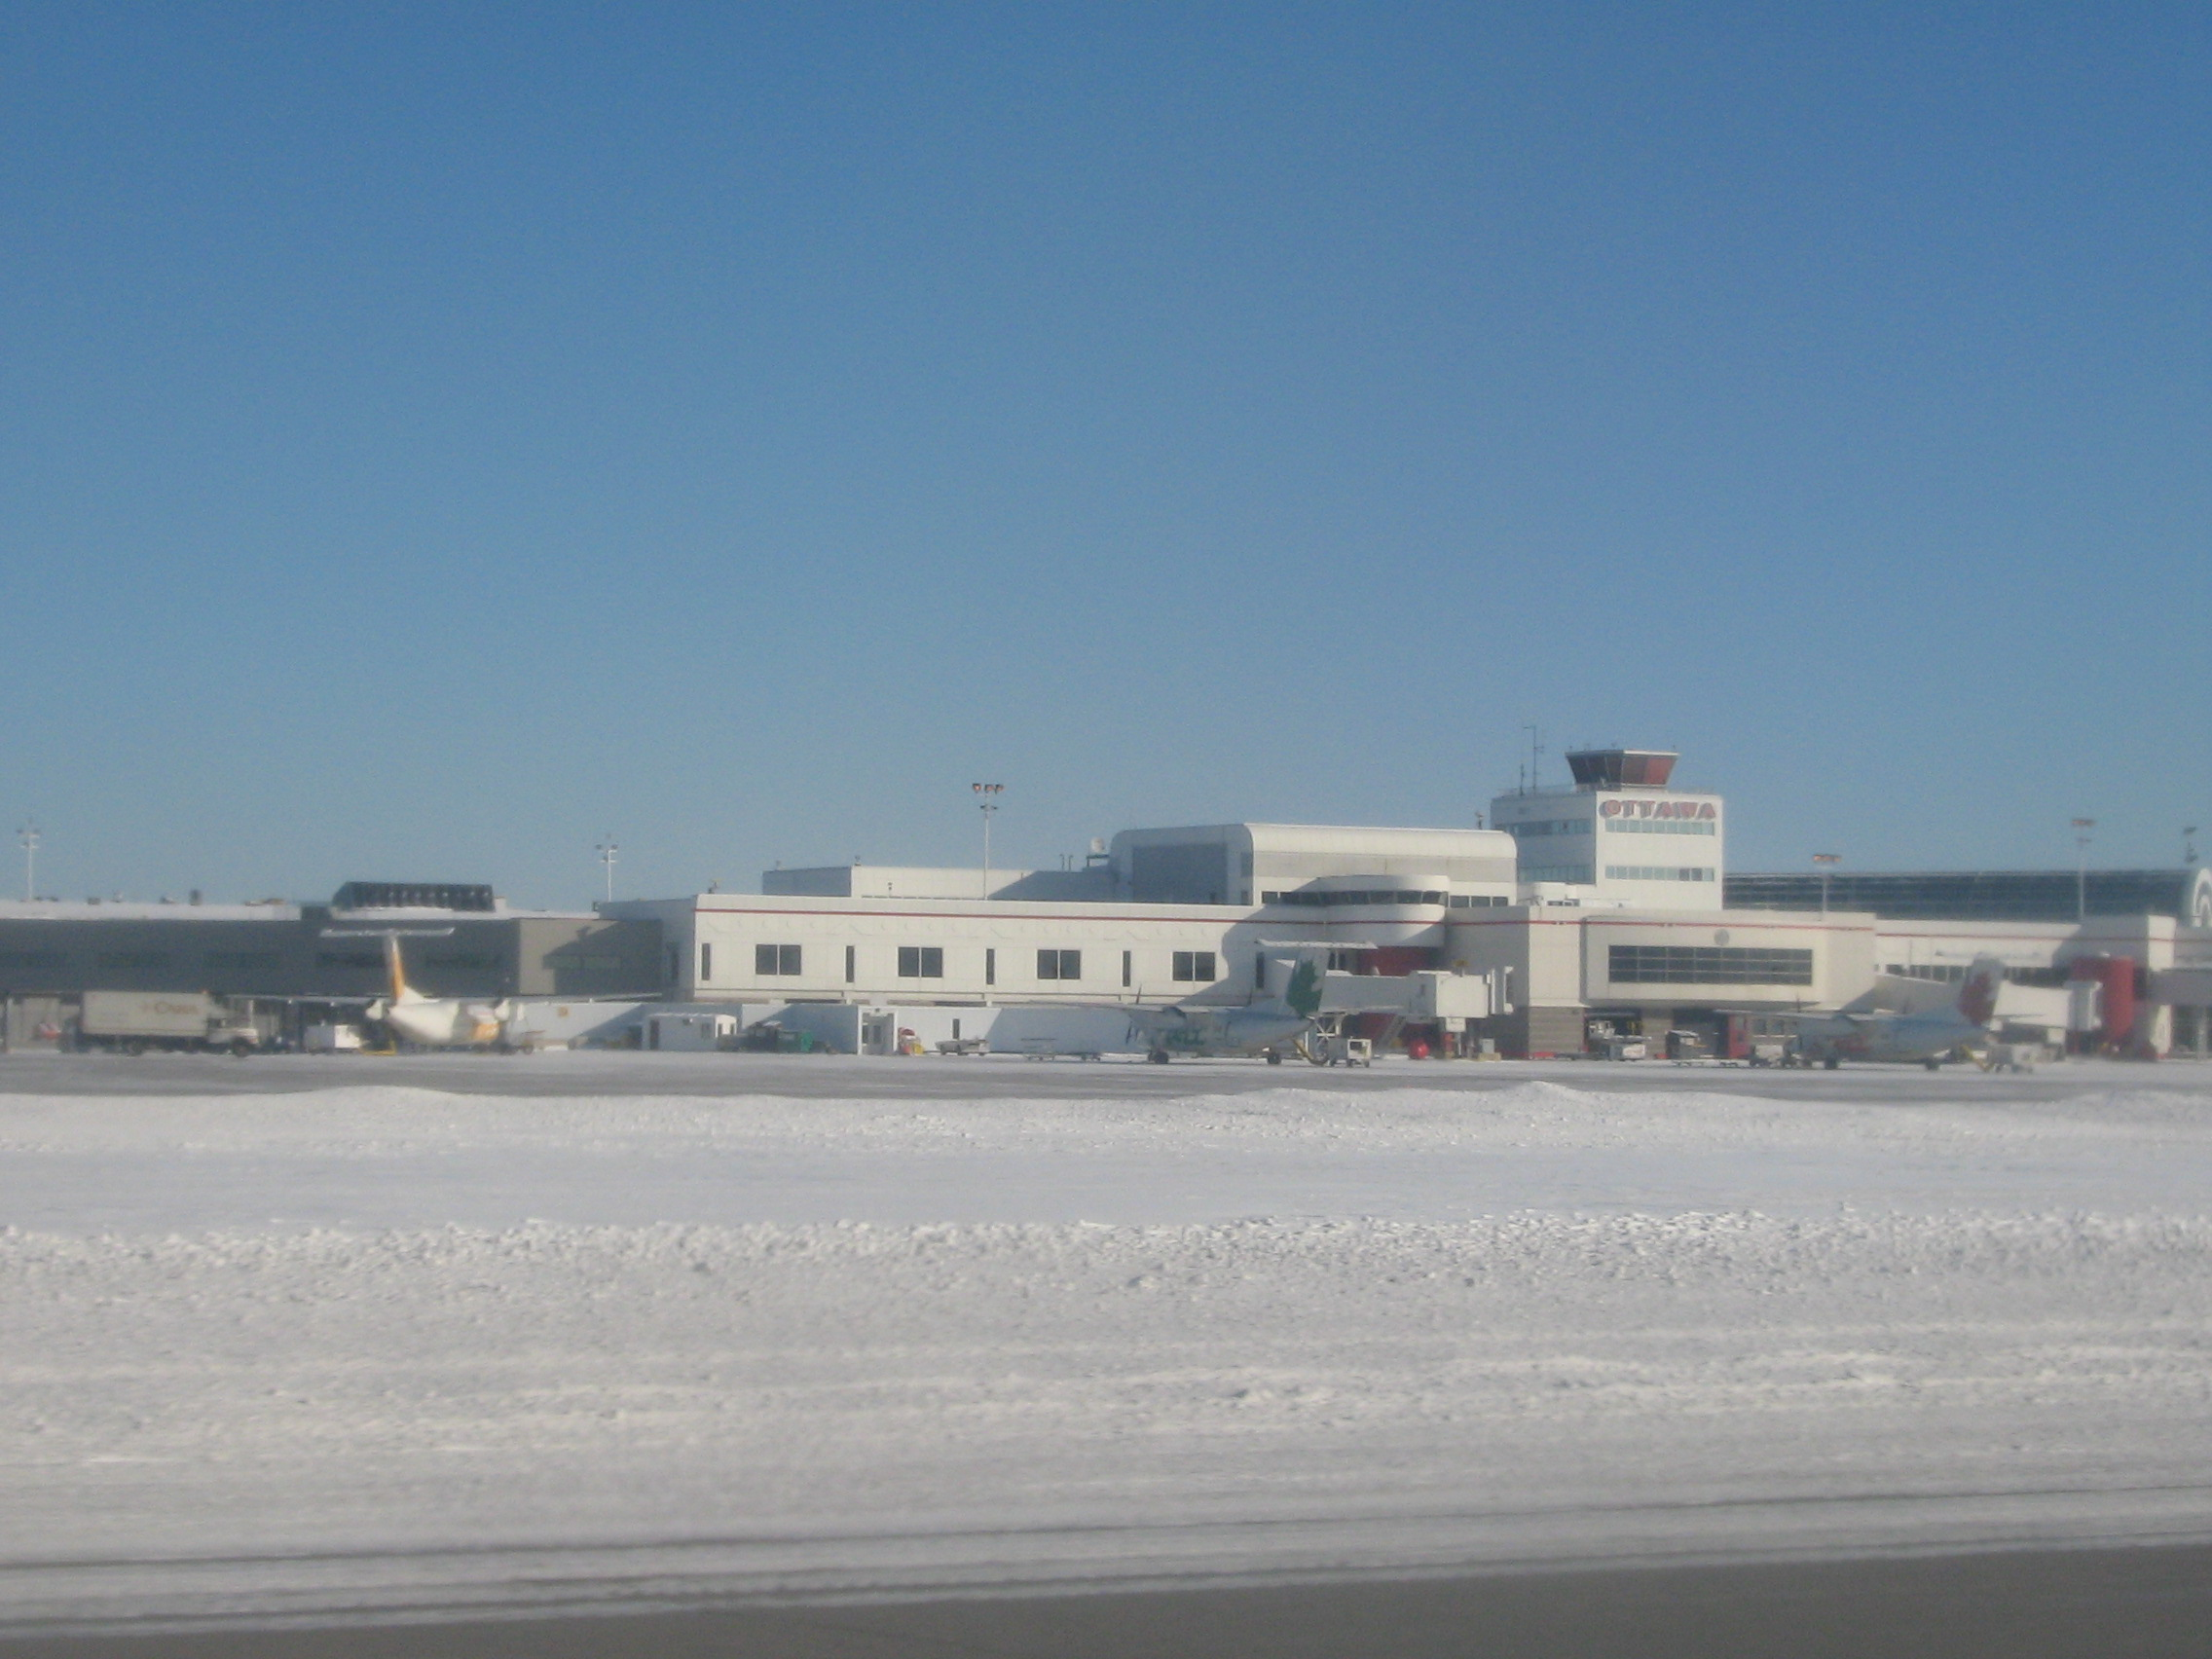 Ottawa Airport is the home base for First Air.